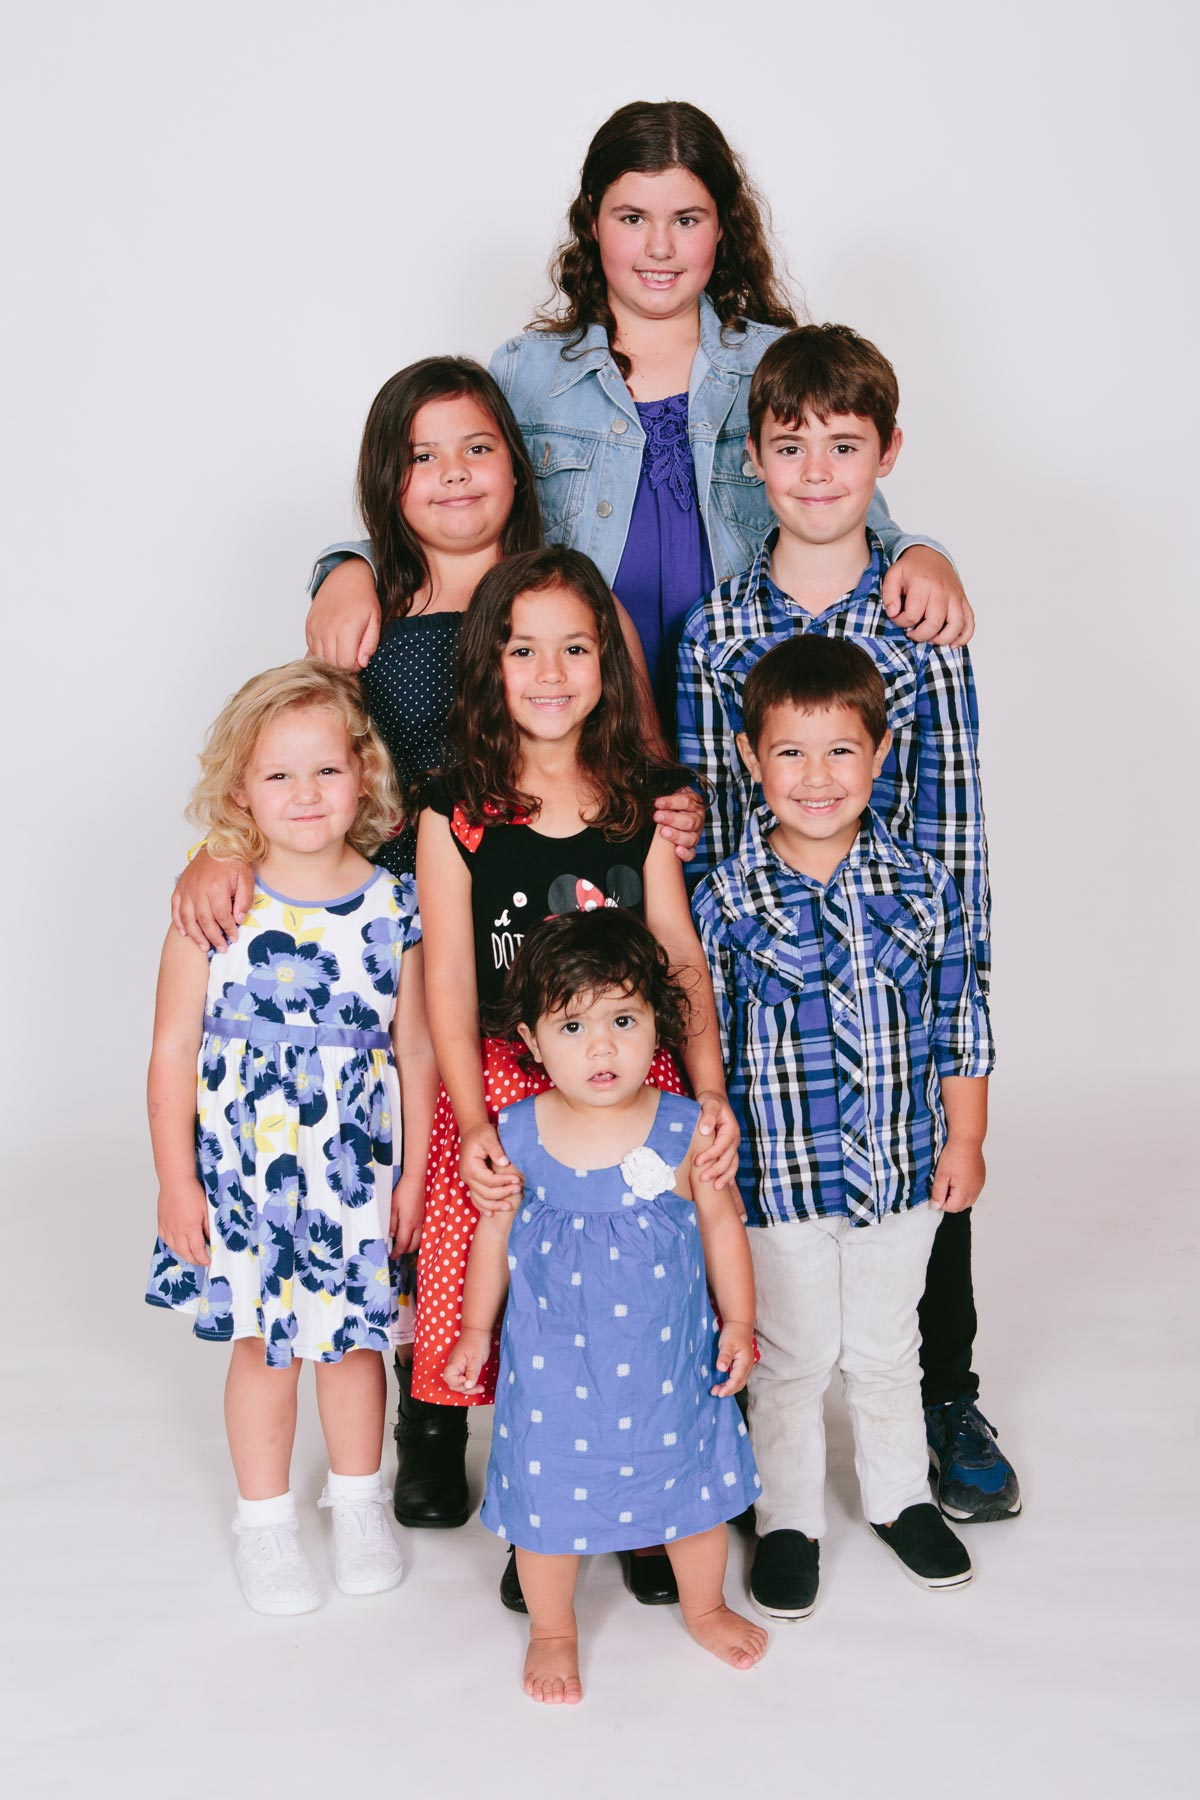 studio photography of cousin children portrait during family photoshoot in west harbour auckland by sarah weber photography